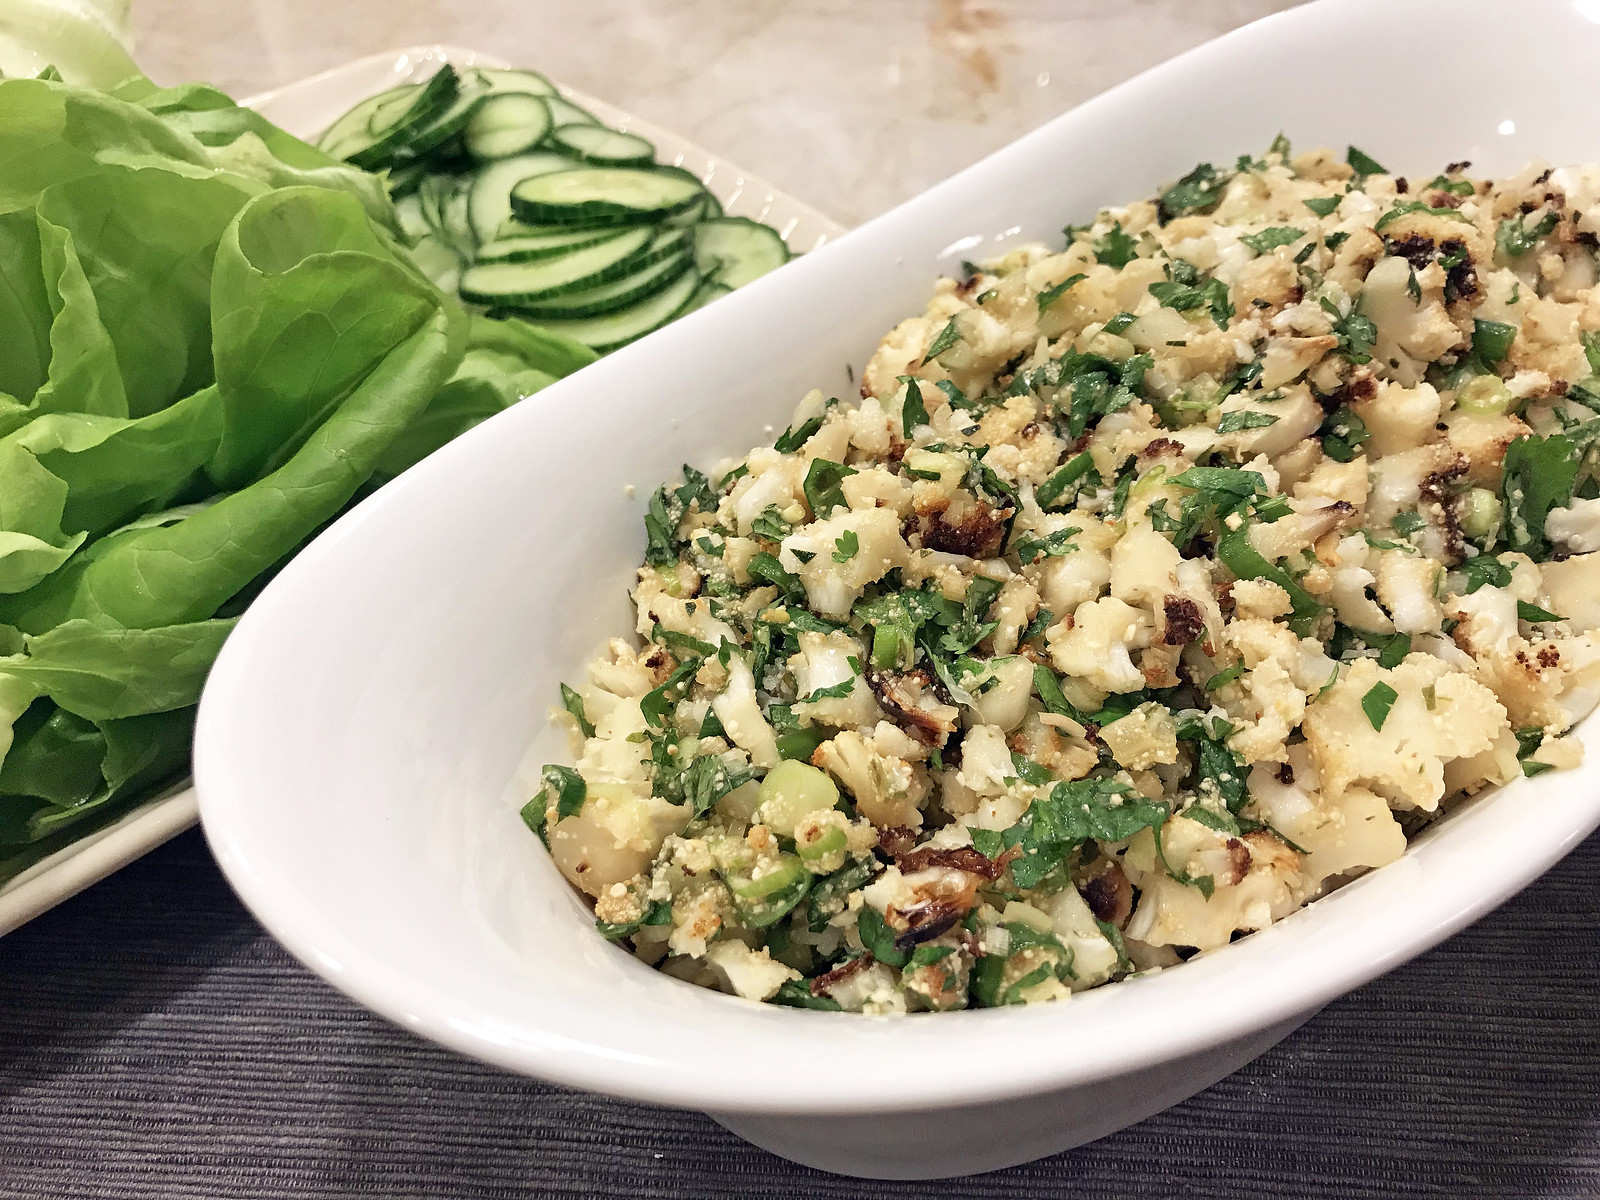 Cauliflower larb